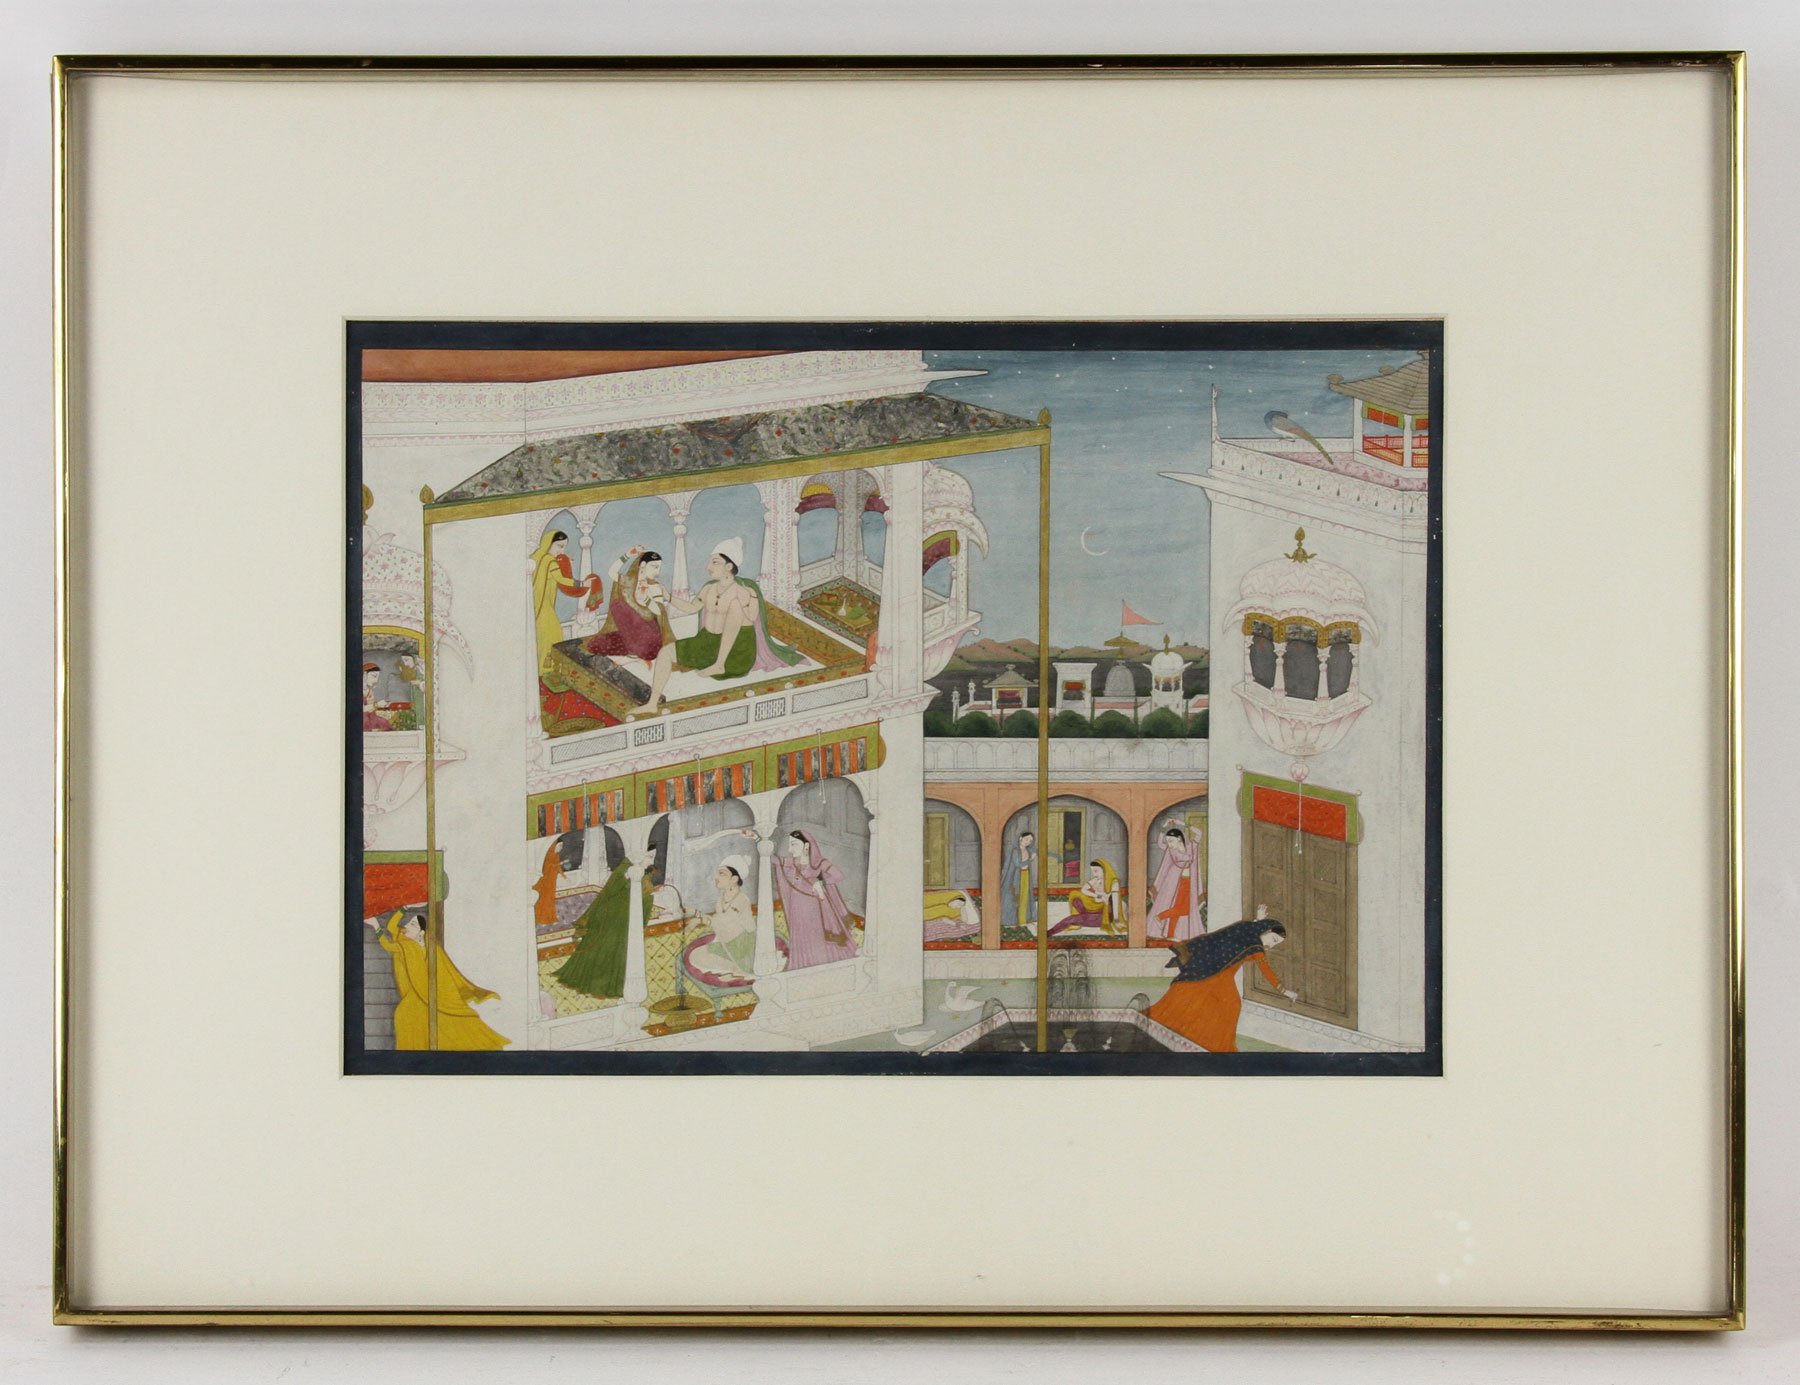 Indian Illuminated Manuscripts From the Collection of Baroness ... - PR Web (press release)